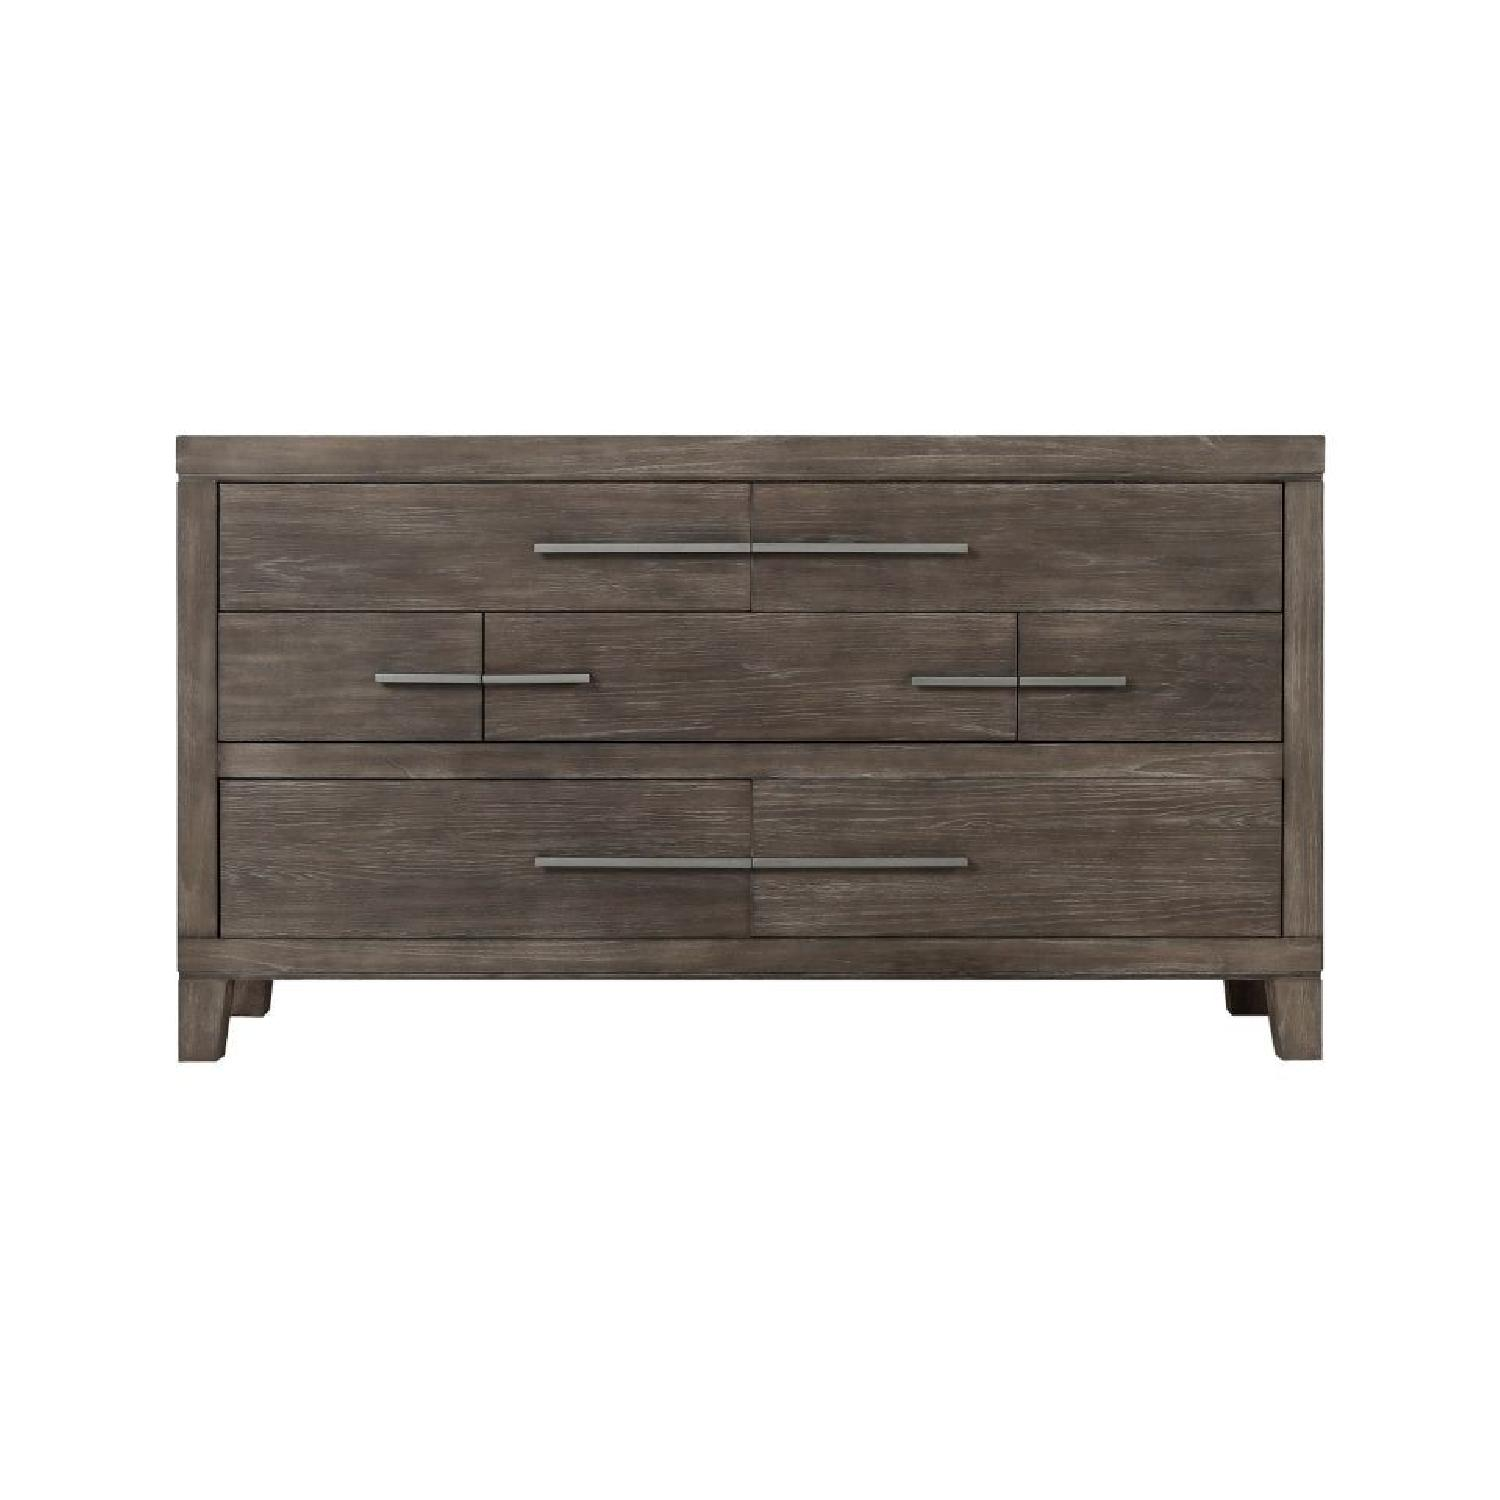 Raymour & Flanigan Rhea Bedroom Dresser